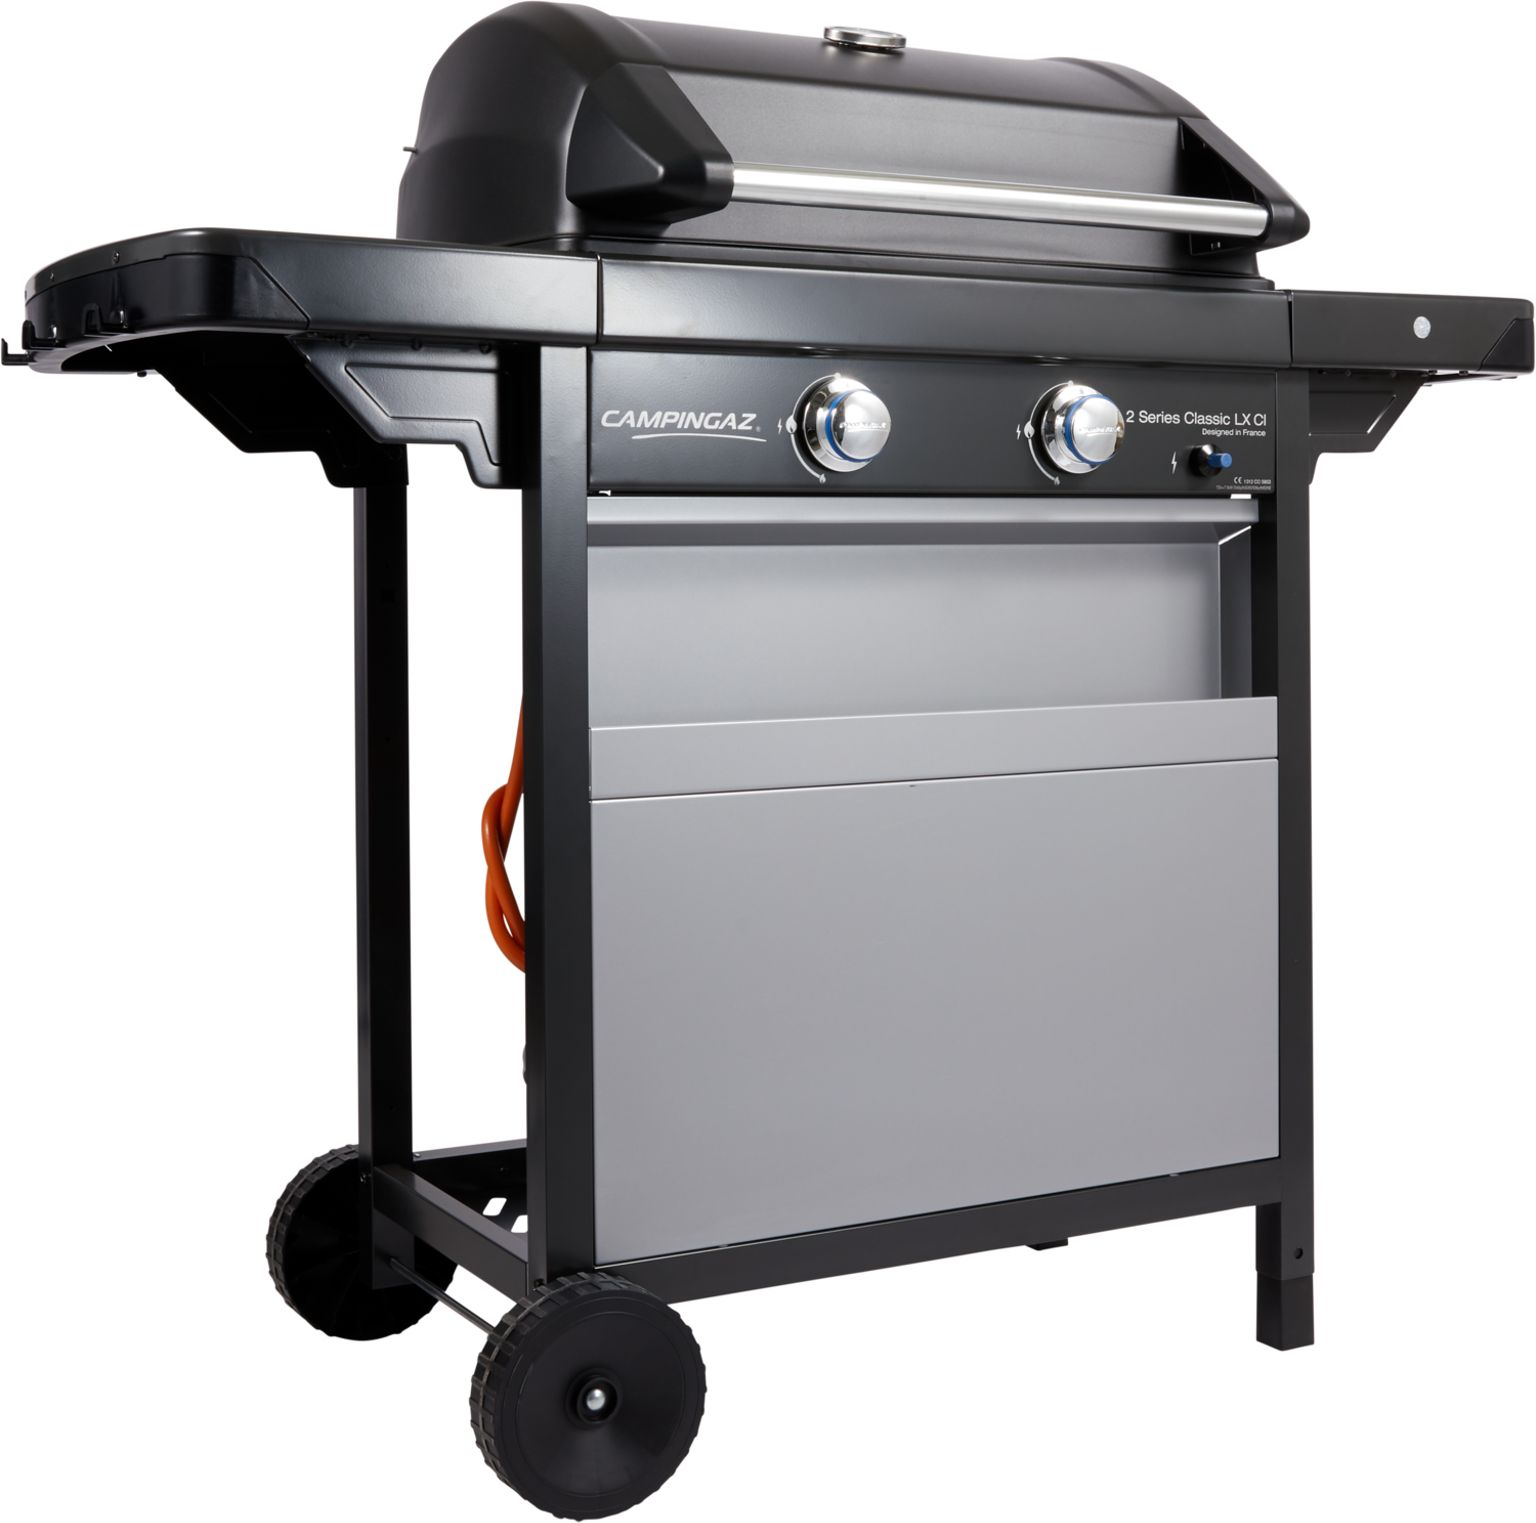 Image of CAMPINGAZ Gasgrill 2 SERIES CLASSIC LX CI